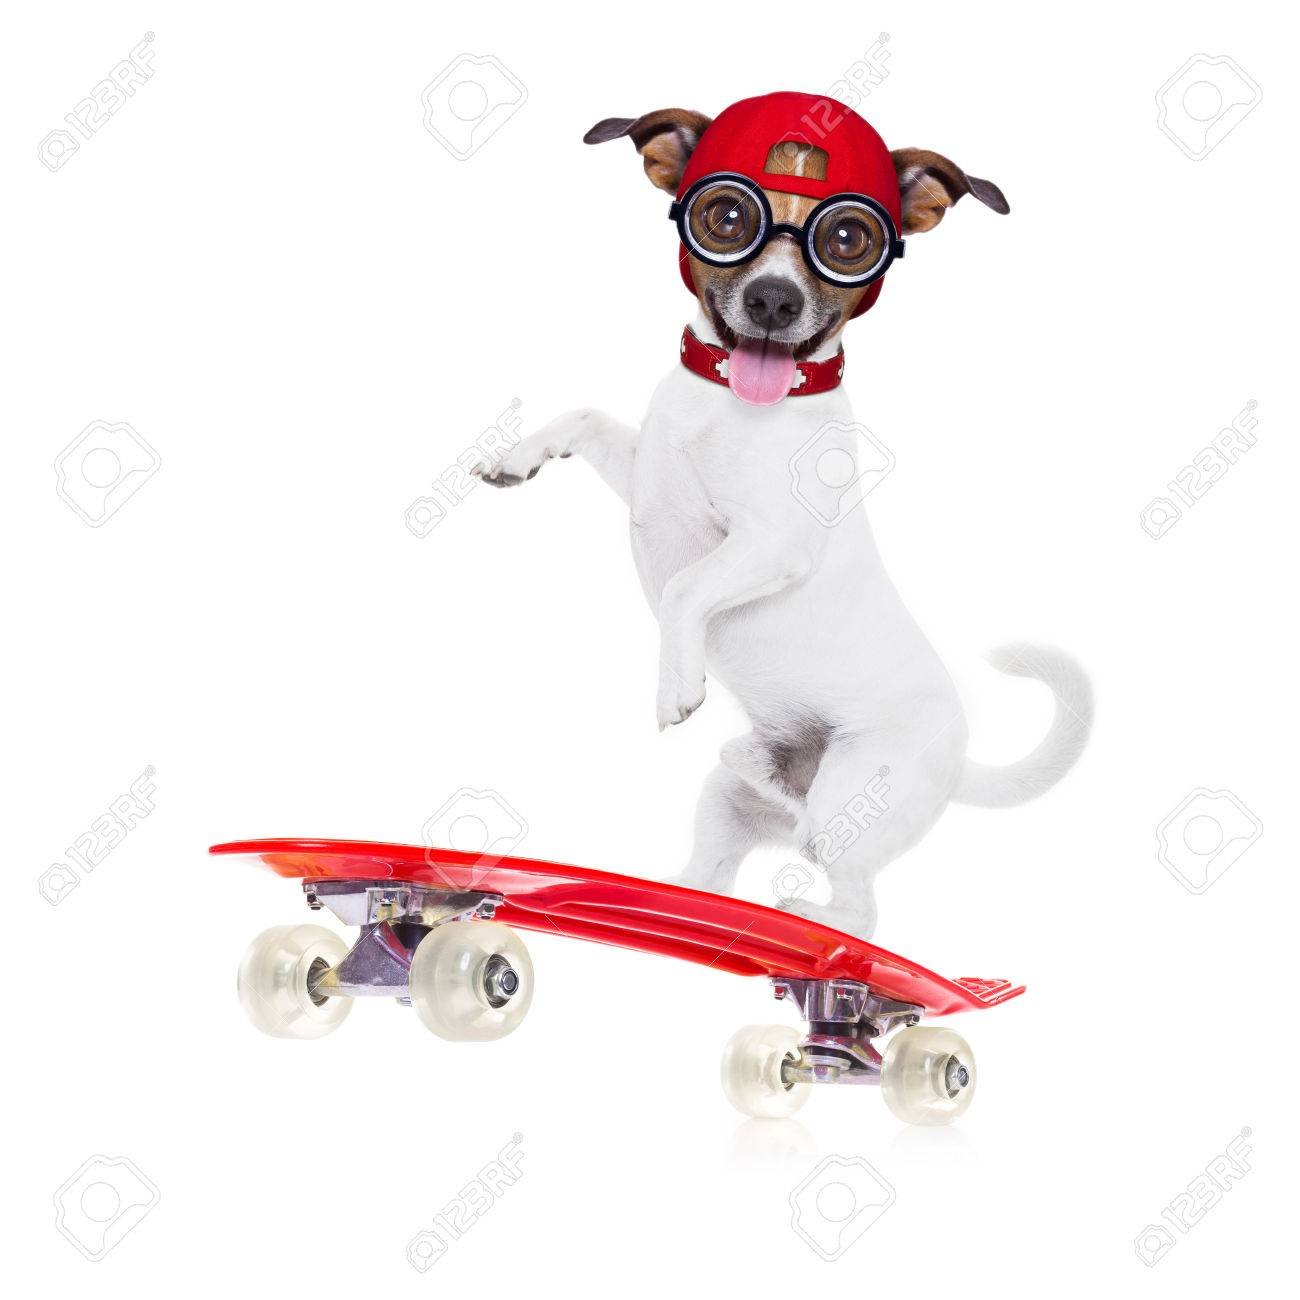 Jack Russell Skater Dog With Red Cap Ready To Play Balancing